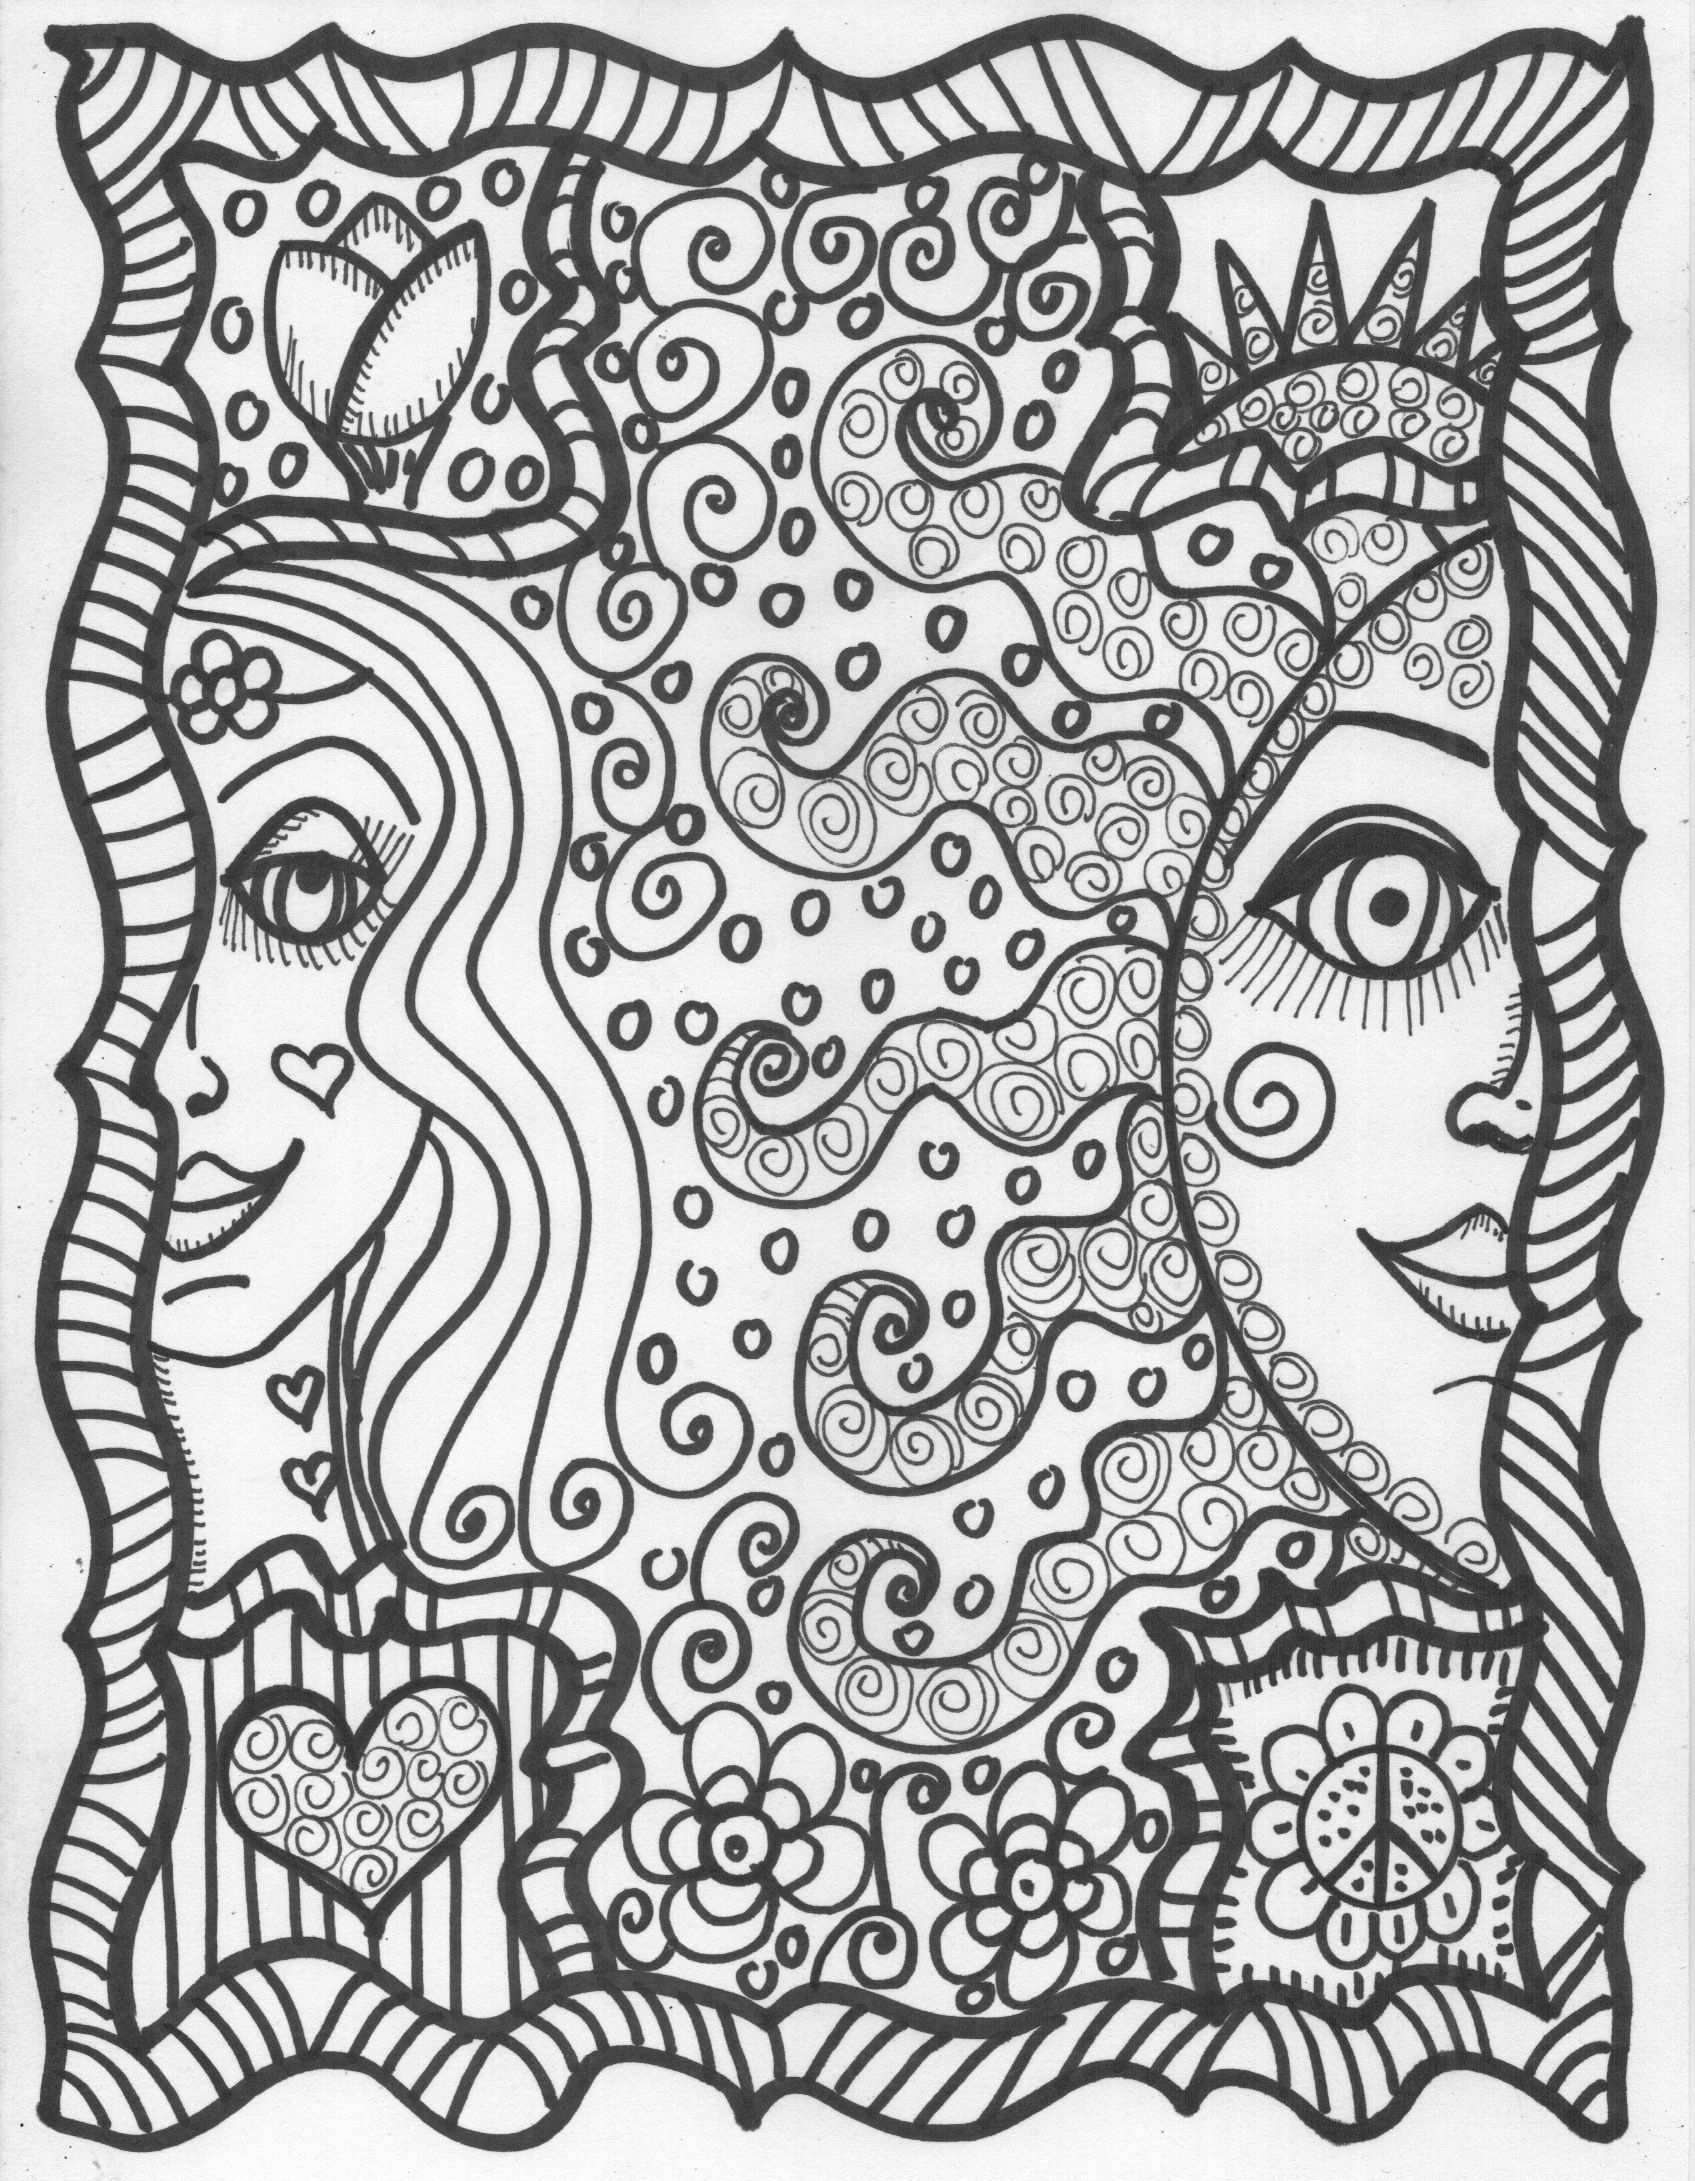 coloring pages designs cool geometric design coloring pages getcoloringpagescom designs coloring pages